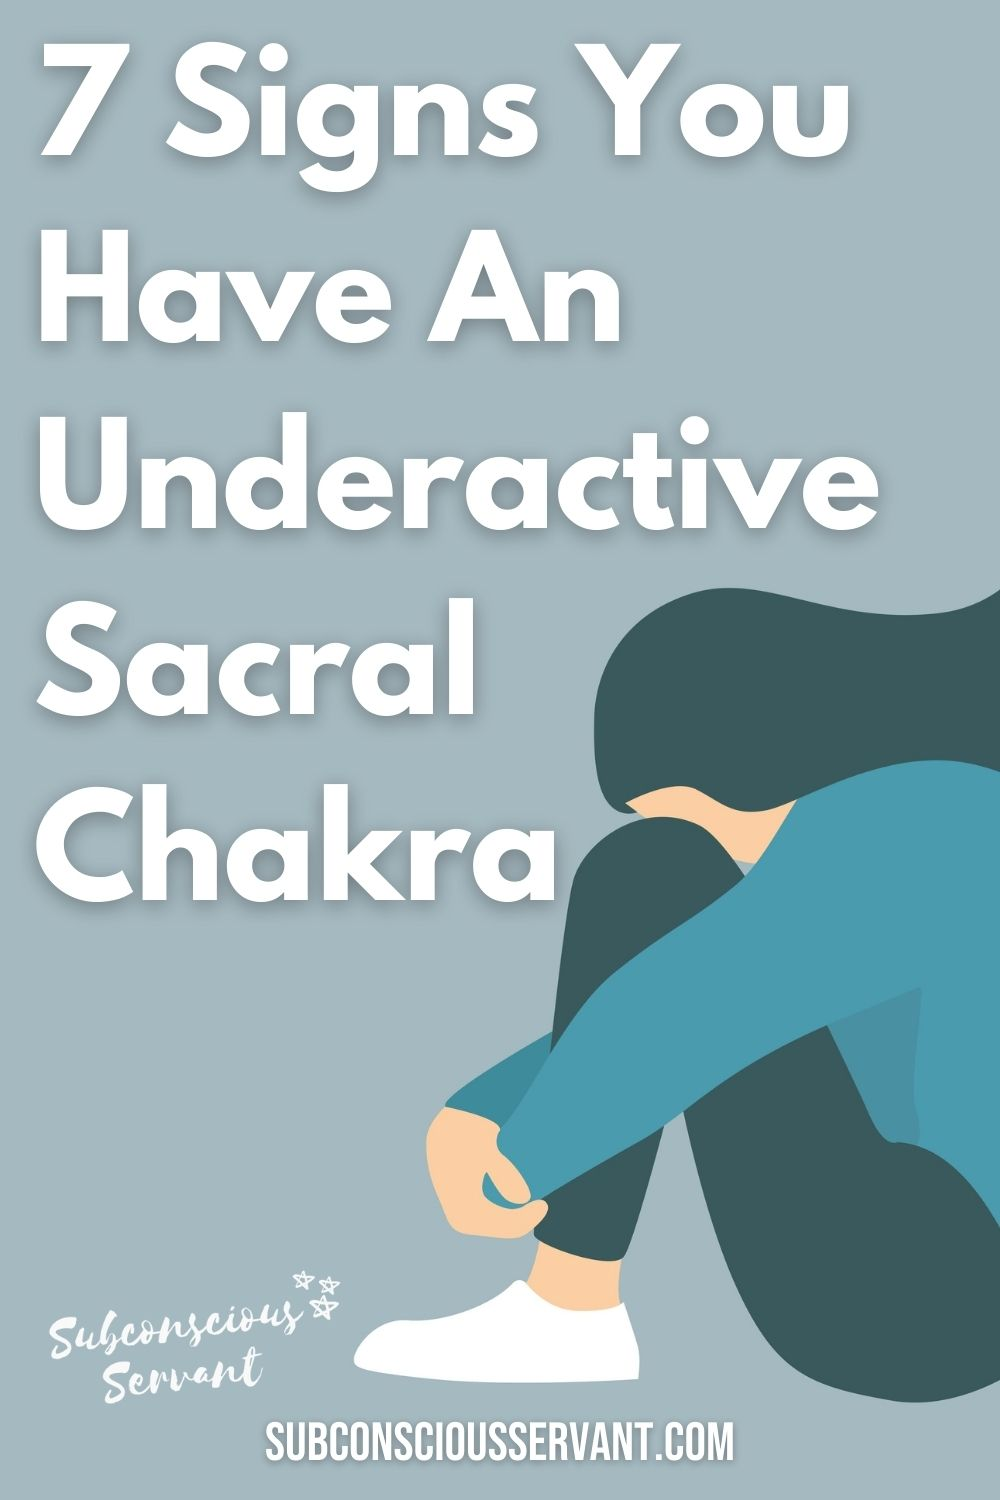 Suffering From An Underactive Sacral Chakra? - 7 Signs To Look Out For